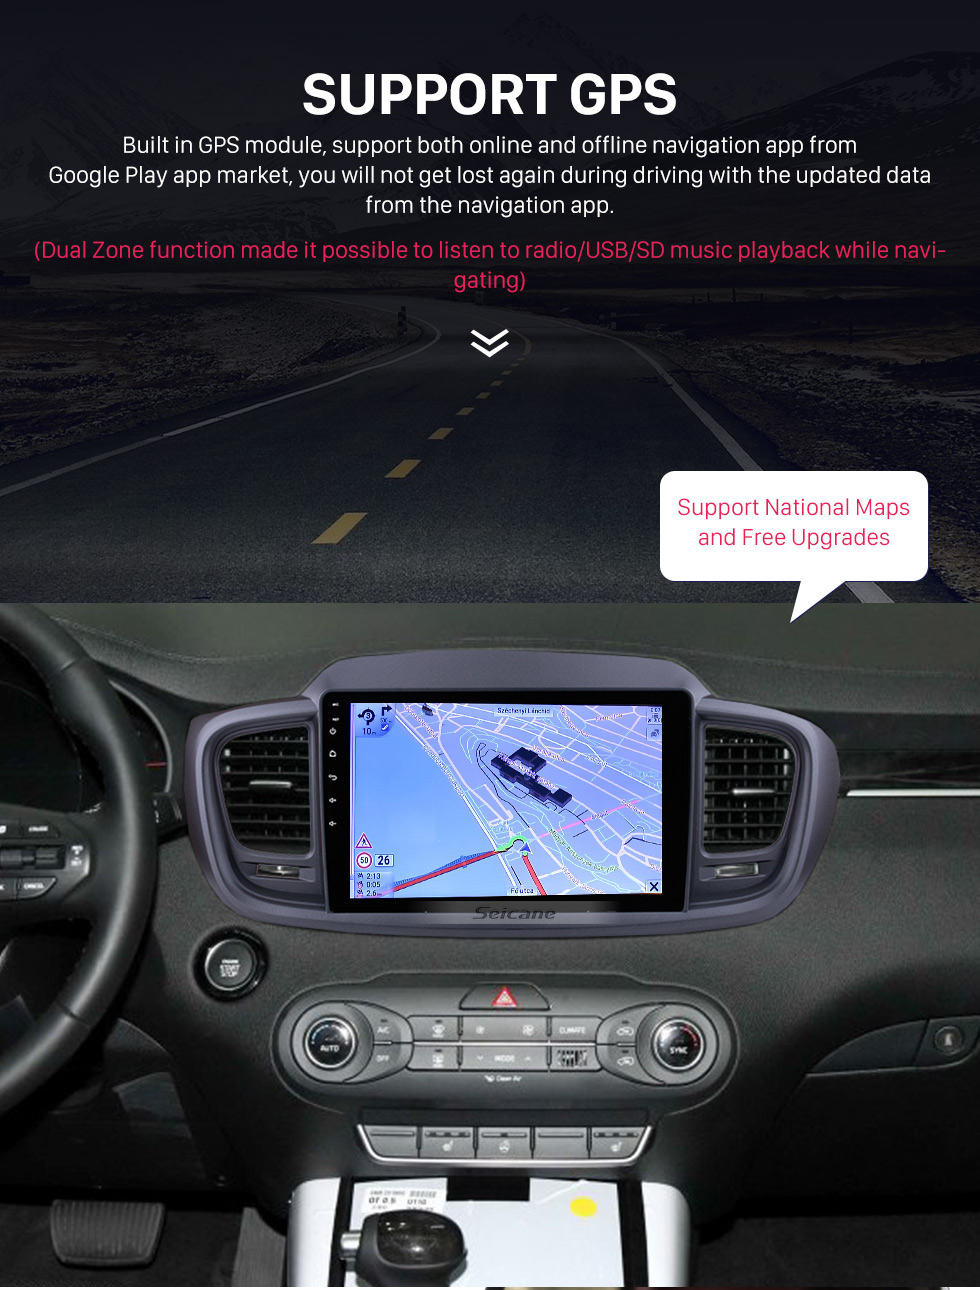 Seicane 10.1 inch Android 9.0 1024*600 Touch Screen Radio Car Multimedia Player For 2015 2016 KIA SORENTO (LHD) GPS Navigation upgrade Head unit with 3G WiFi Radio Bluetooth Music USB Mirror Link support DVR OBD2 Backup Camera Steering Wheel Control TPMS